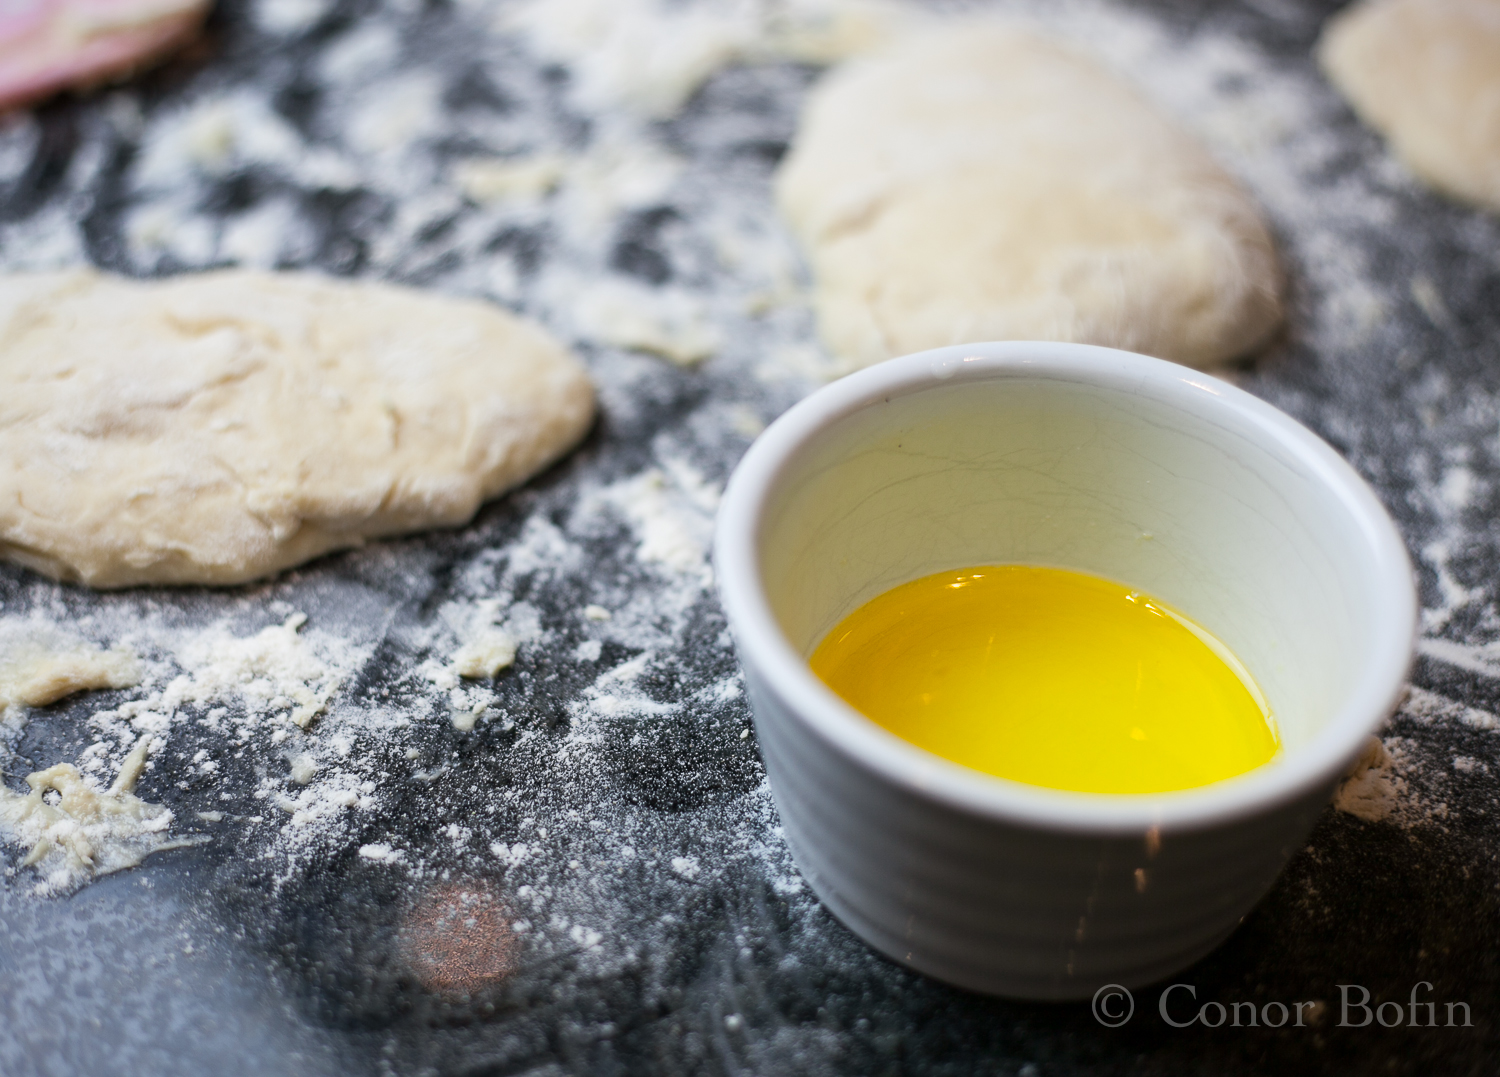 The clarified butter has a fantastic colour when melted. Just thought you would like to see...